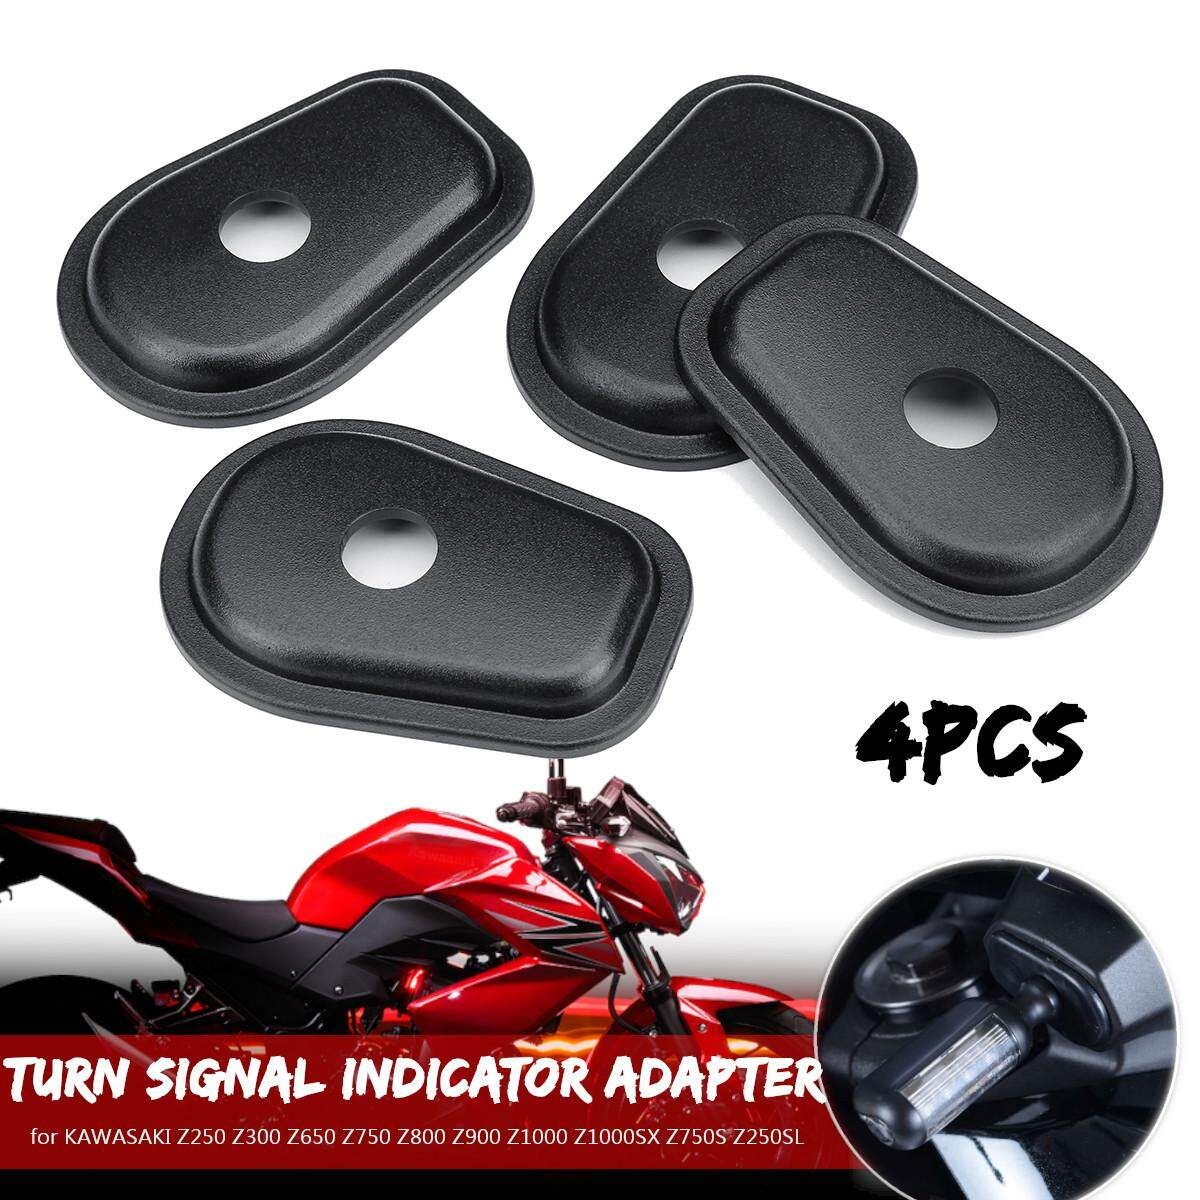 Black Motorcycle Refit Turn Signal Lights Adapter Spacers for Kawasaki Z250 Z300 Z650 Z750 Z800 Z900 Z1000 Z1000SX Z750S Z250SL